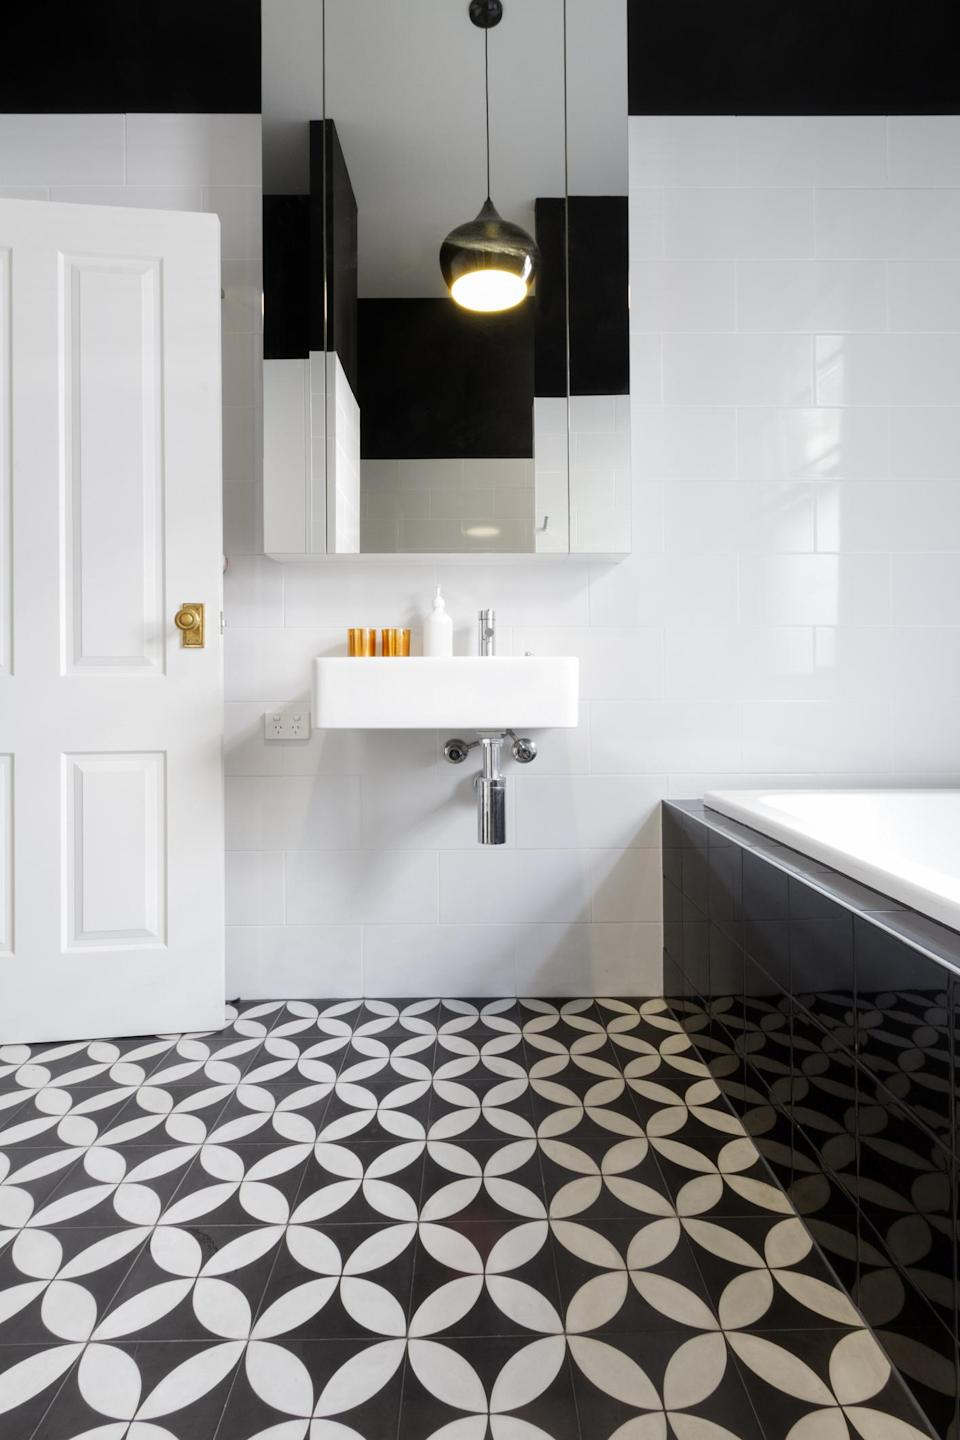 Monochrome bathrooms and patterned tiles were a turn-off for home-buyers (Getty Images)